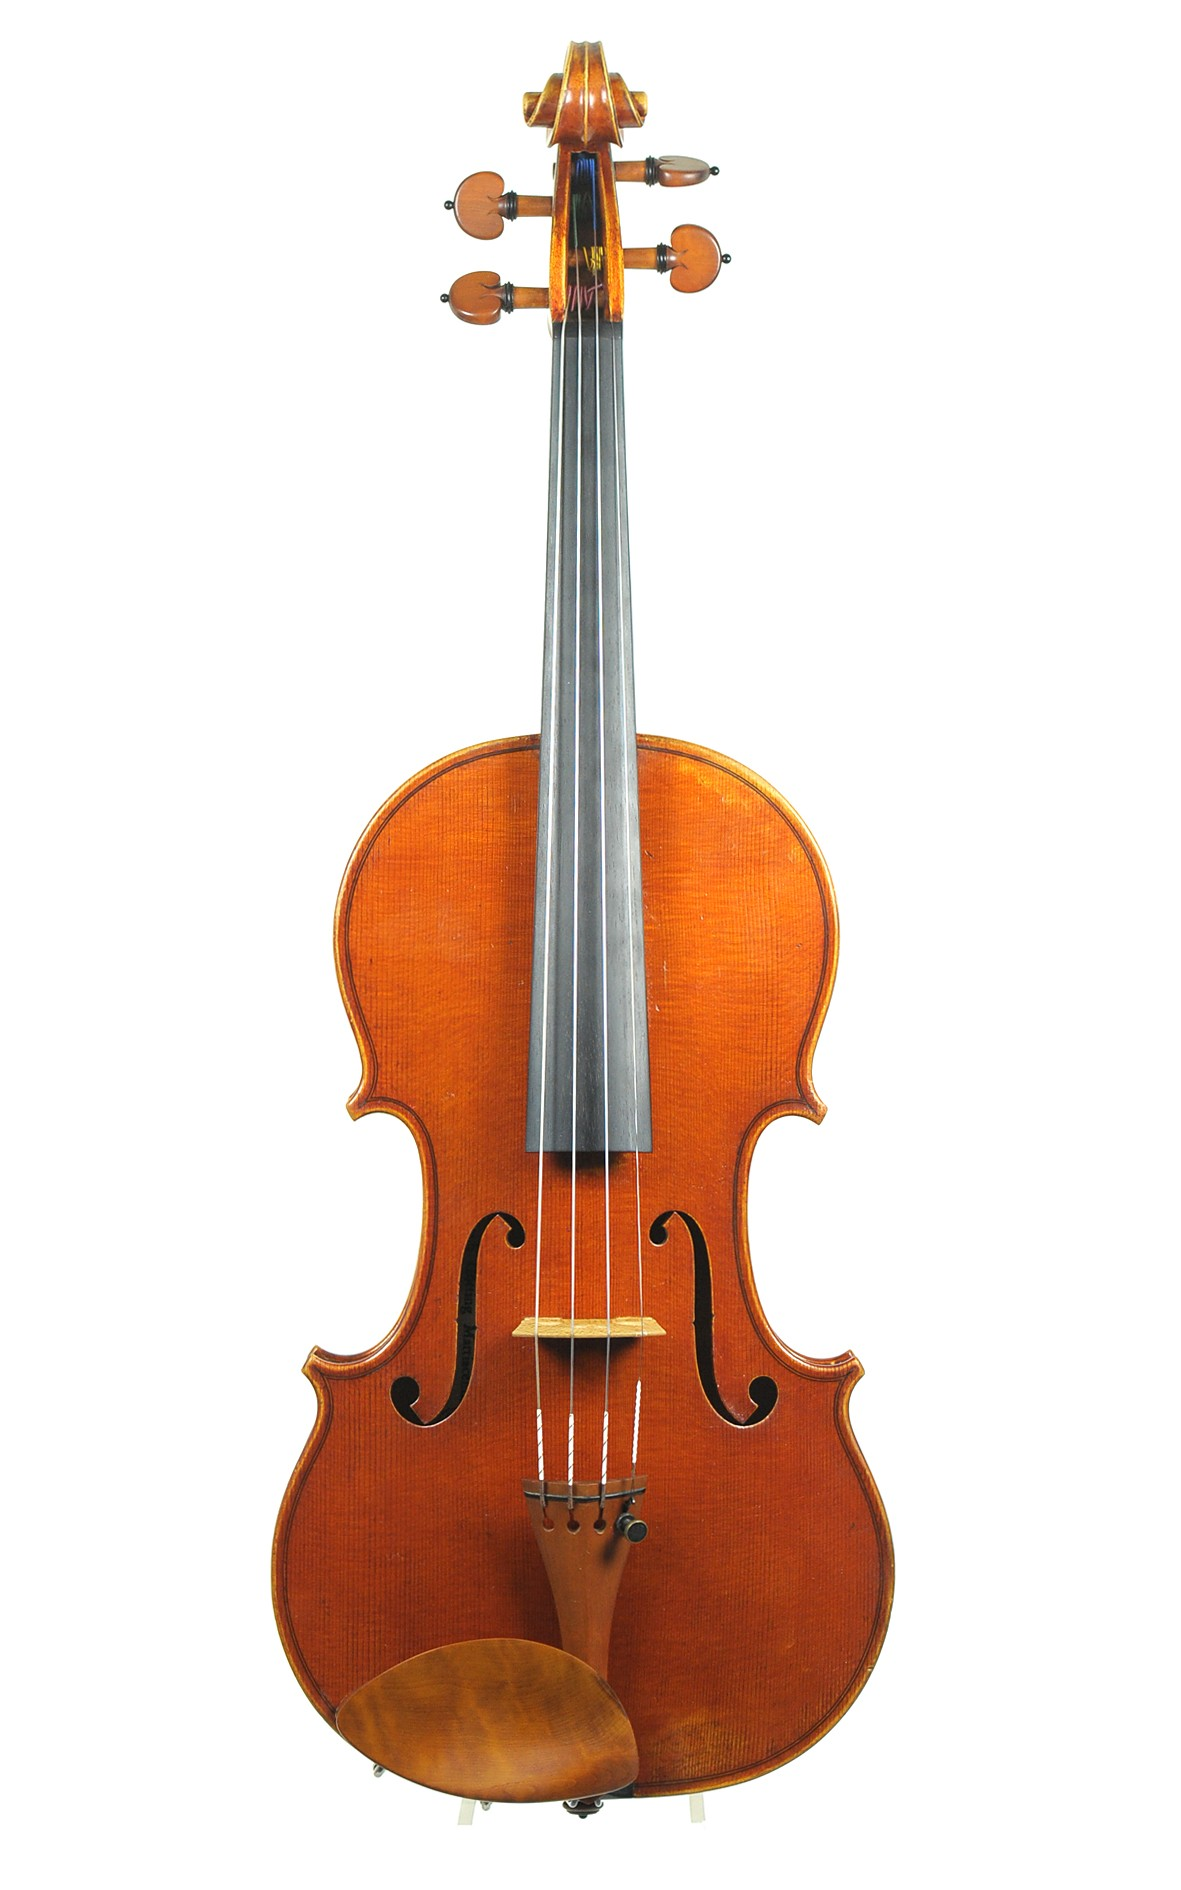 Christoph Götting, contemporary elite master violin - top view